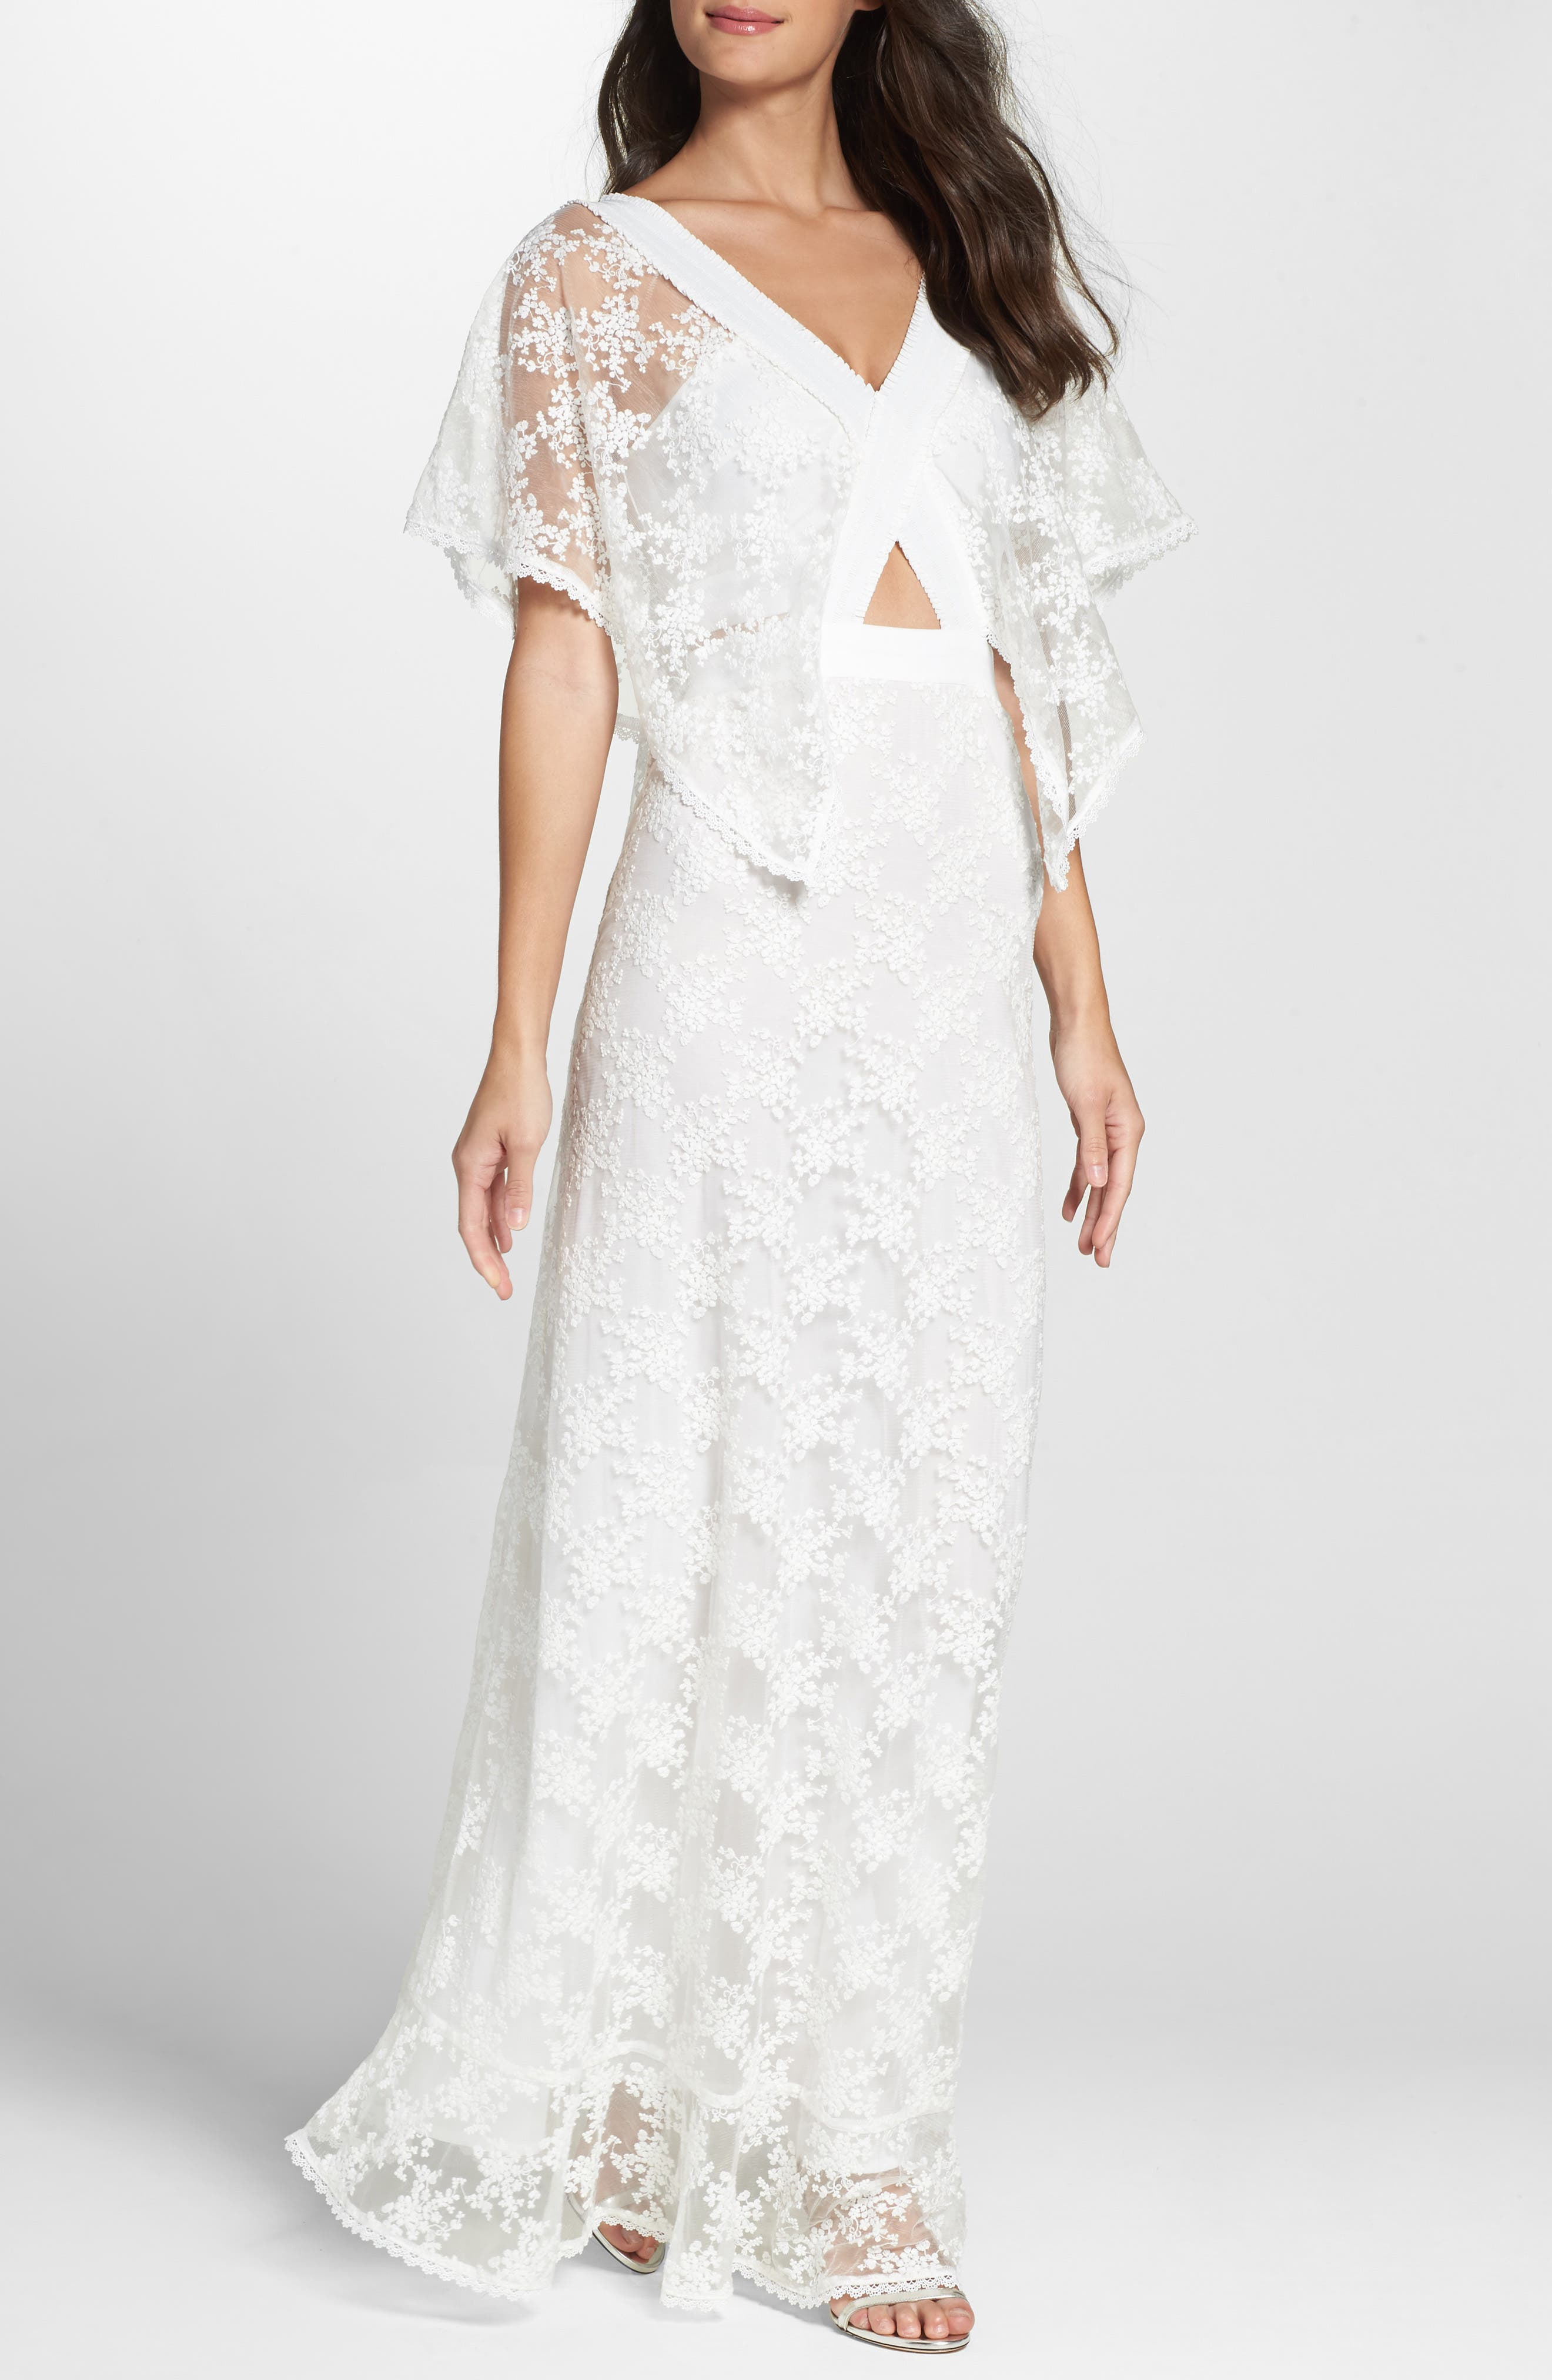 August Handkerchief Sleeve Embroidered Long Dress,                         Main,                         color,